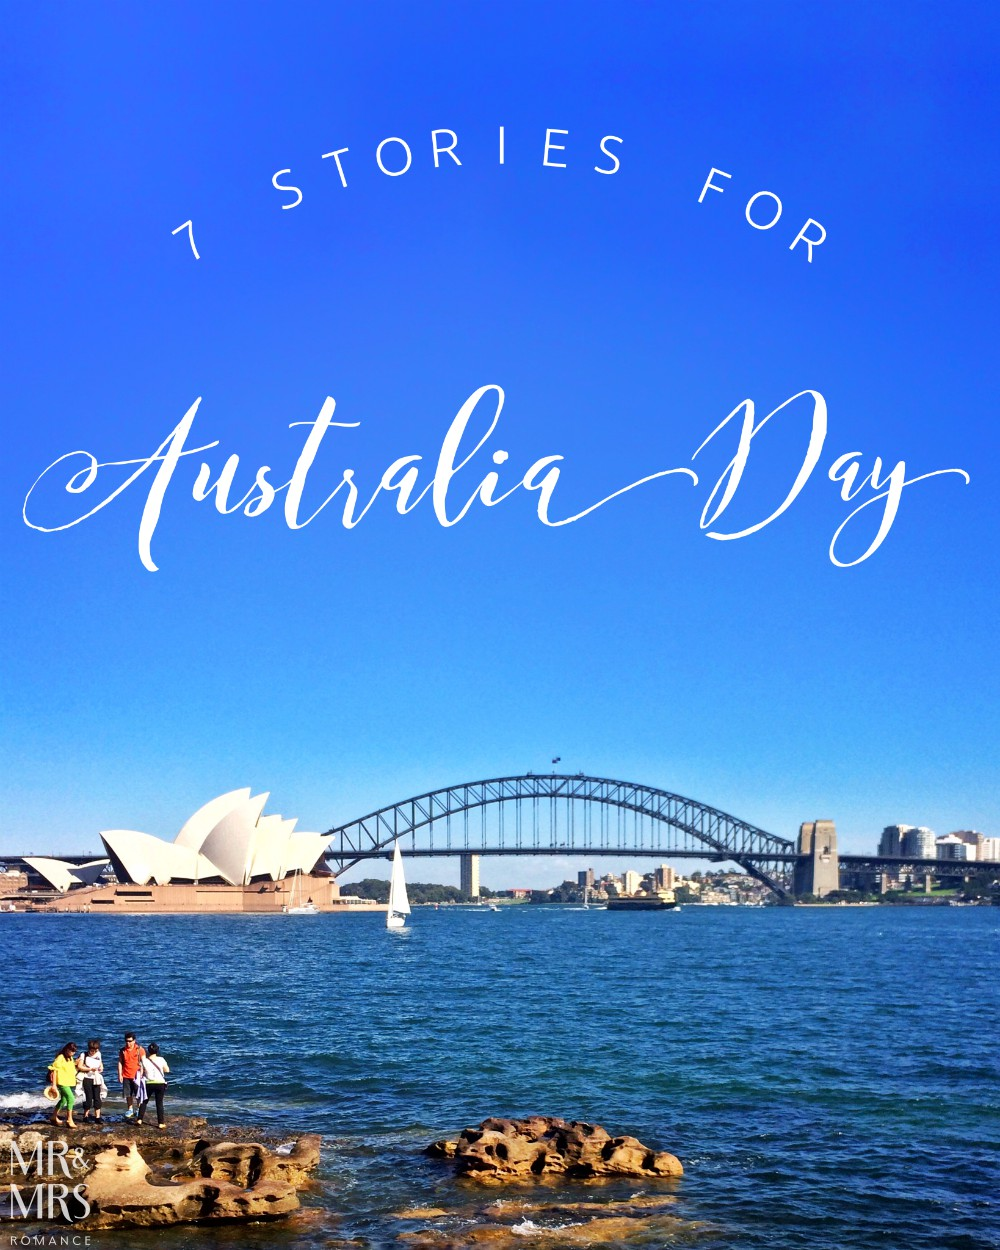 Australia Day stories - Mr & Mrs Romance